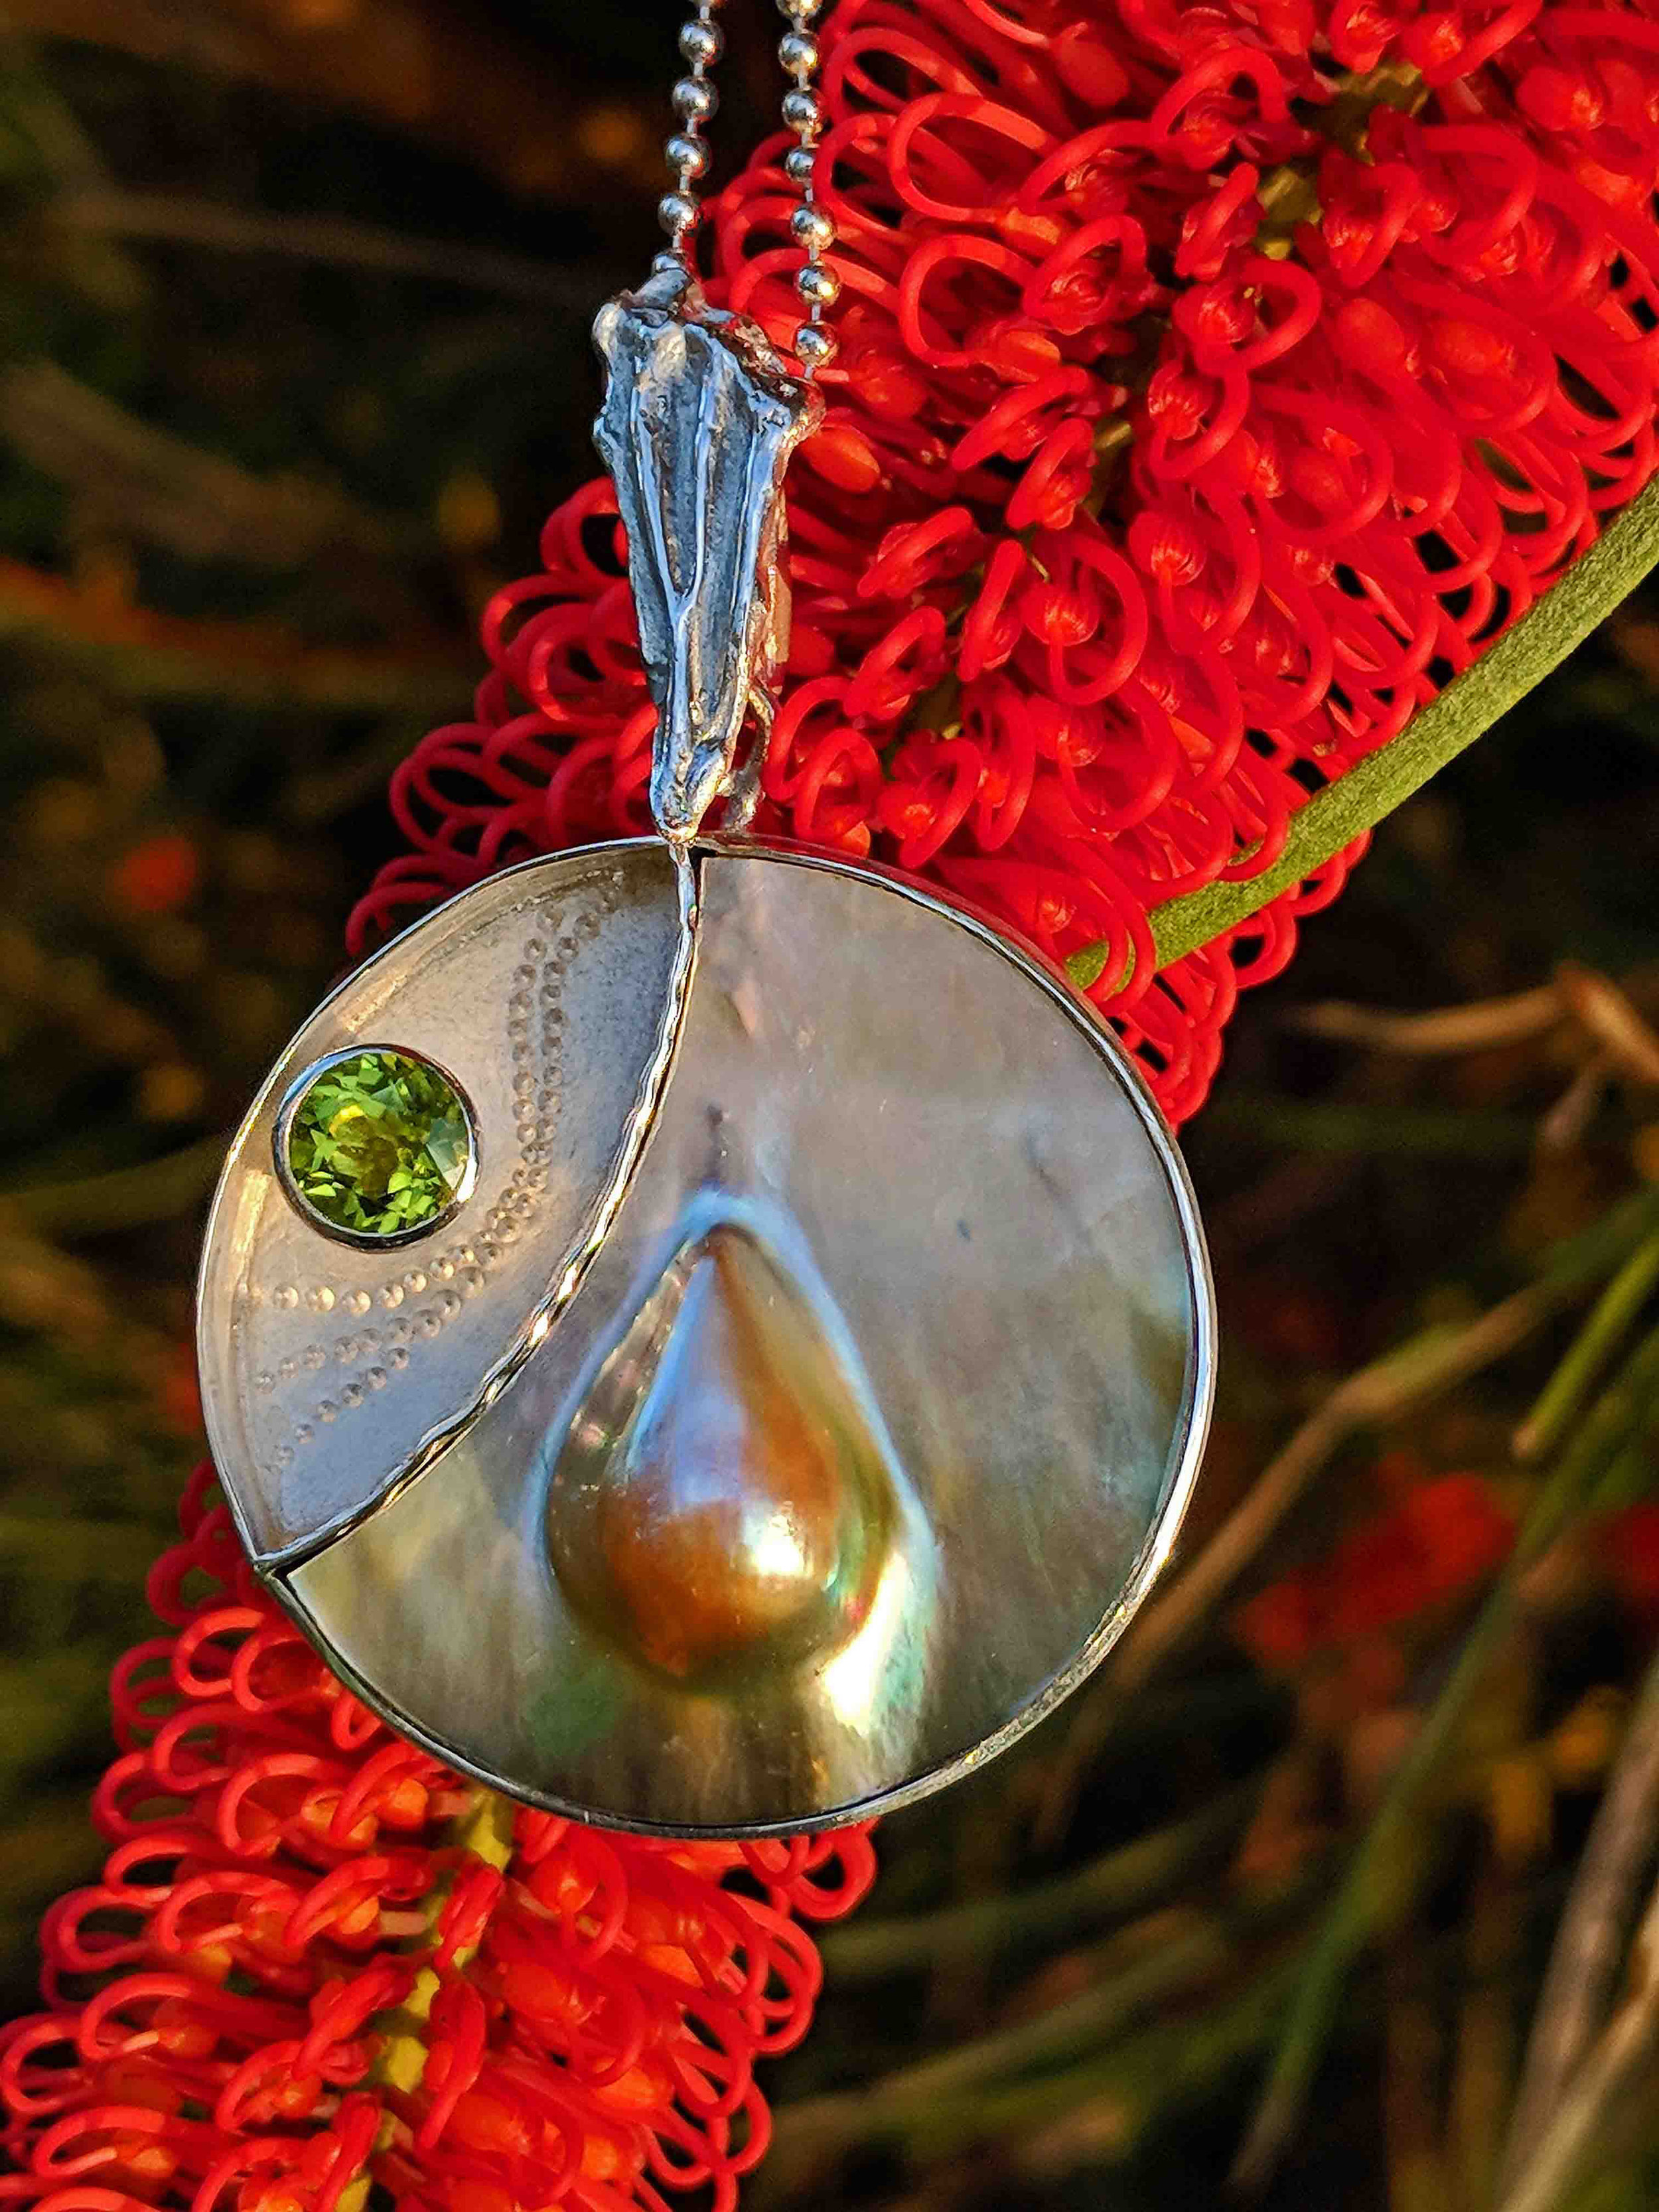 CAPE RANGE COLLECTION  Beautiful Peacock Abrolhos Mabe Pearl with Peridot and Signature Splice of Life Bail.  Inspired by the dawn walk over the dunes to the beach, marveling at the myriad of new tracks in the cool sand and watching as the sunrise brings colour to the world.